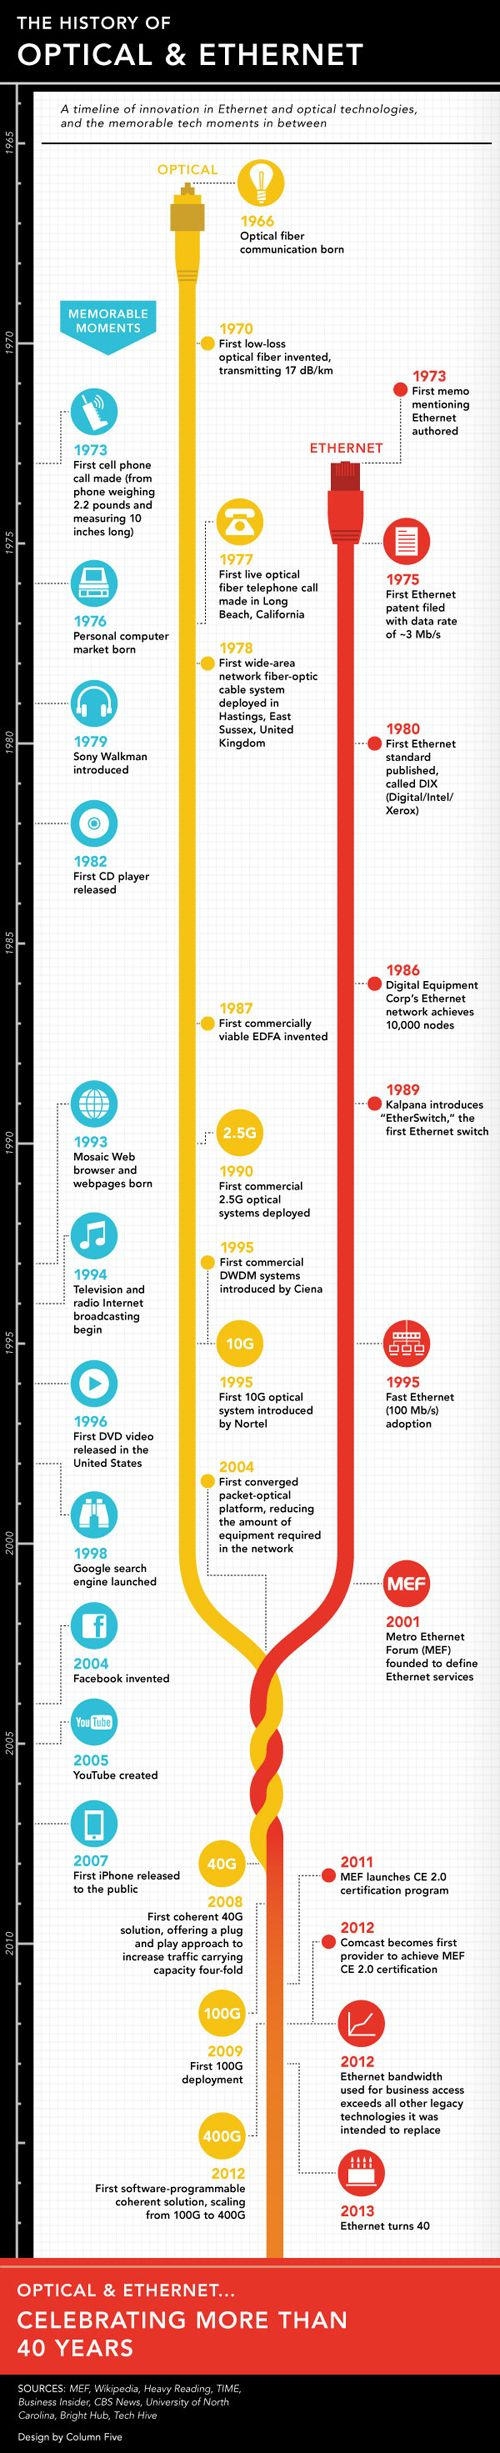 Ciena - Infographic: The history of optical and Ethernet - Overview | 40 Years of Ethernet | Light Reading Any timeline that ends with a cake has got to be worth sharing, but that's not the only reason we like this celebration of 40 years of Ethernet -- running it alongside optical networking developments tells a very neat story.  http://www.lightreading.com/document.asp?doc_id=430969 http://www.ciena.com/connect/blog/Infographic-The-history-of-optical-and-Ethernet.html